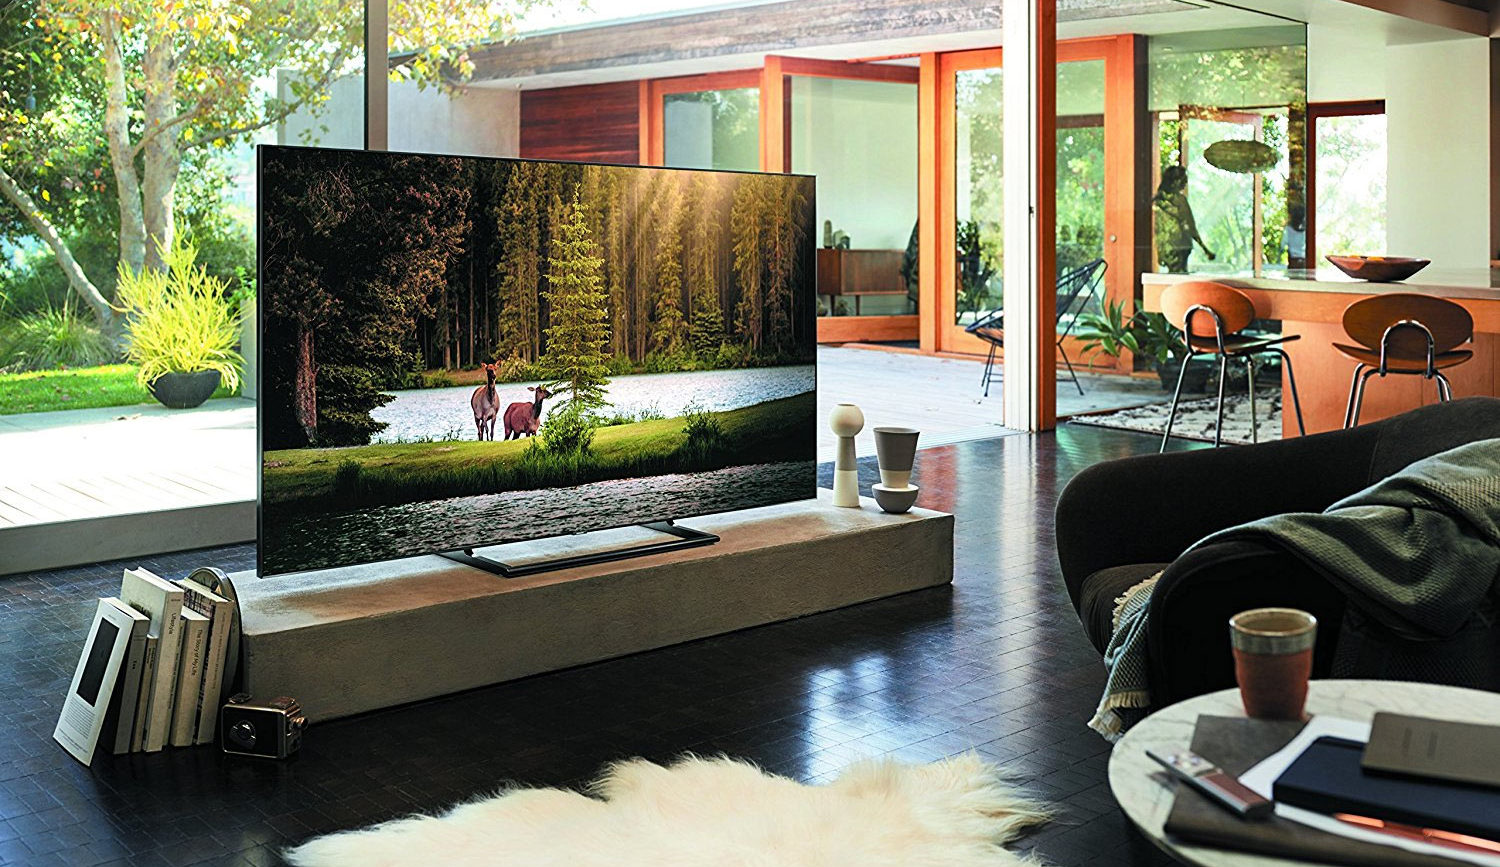 Samsung's new TV's disappear when not in use : Luxurylaunches